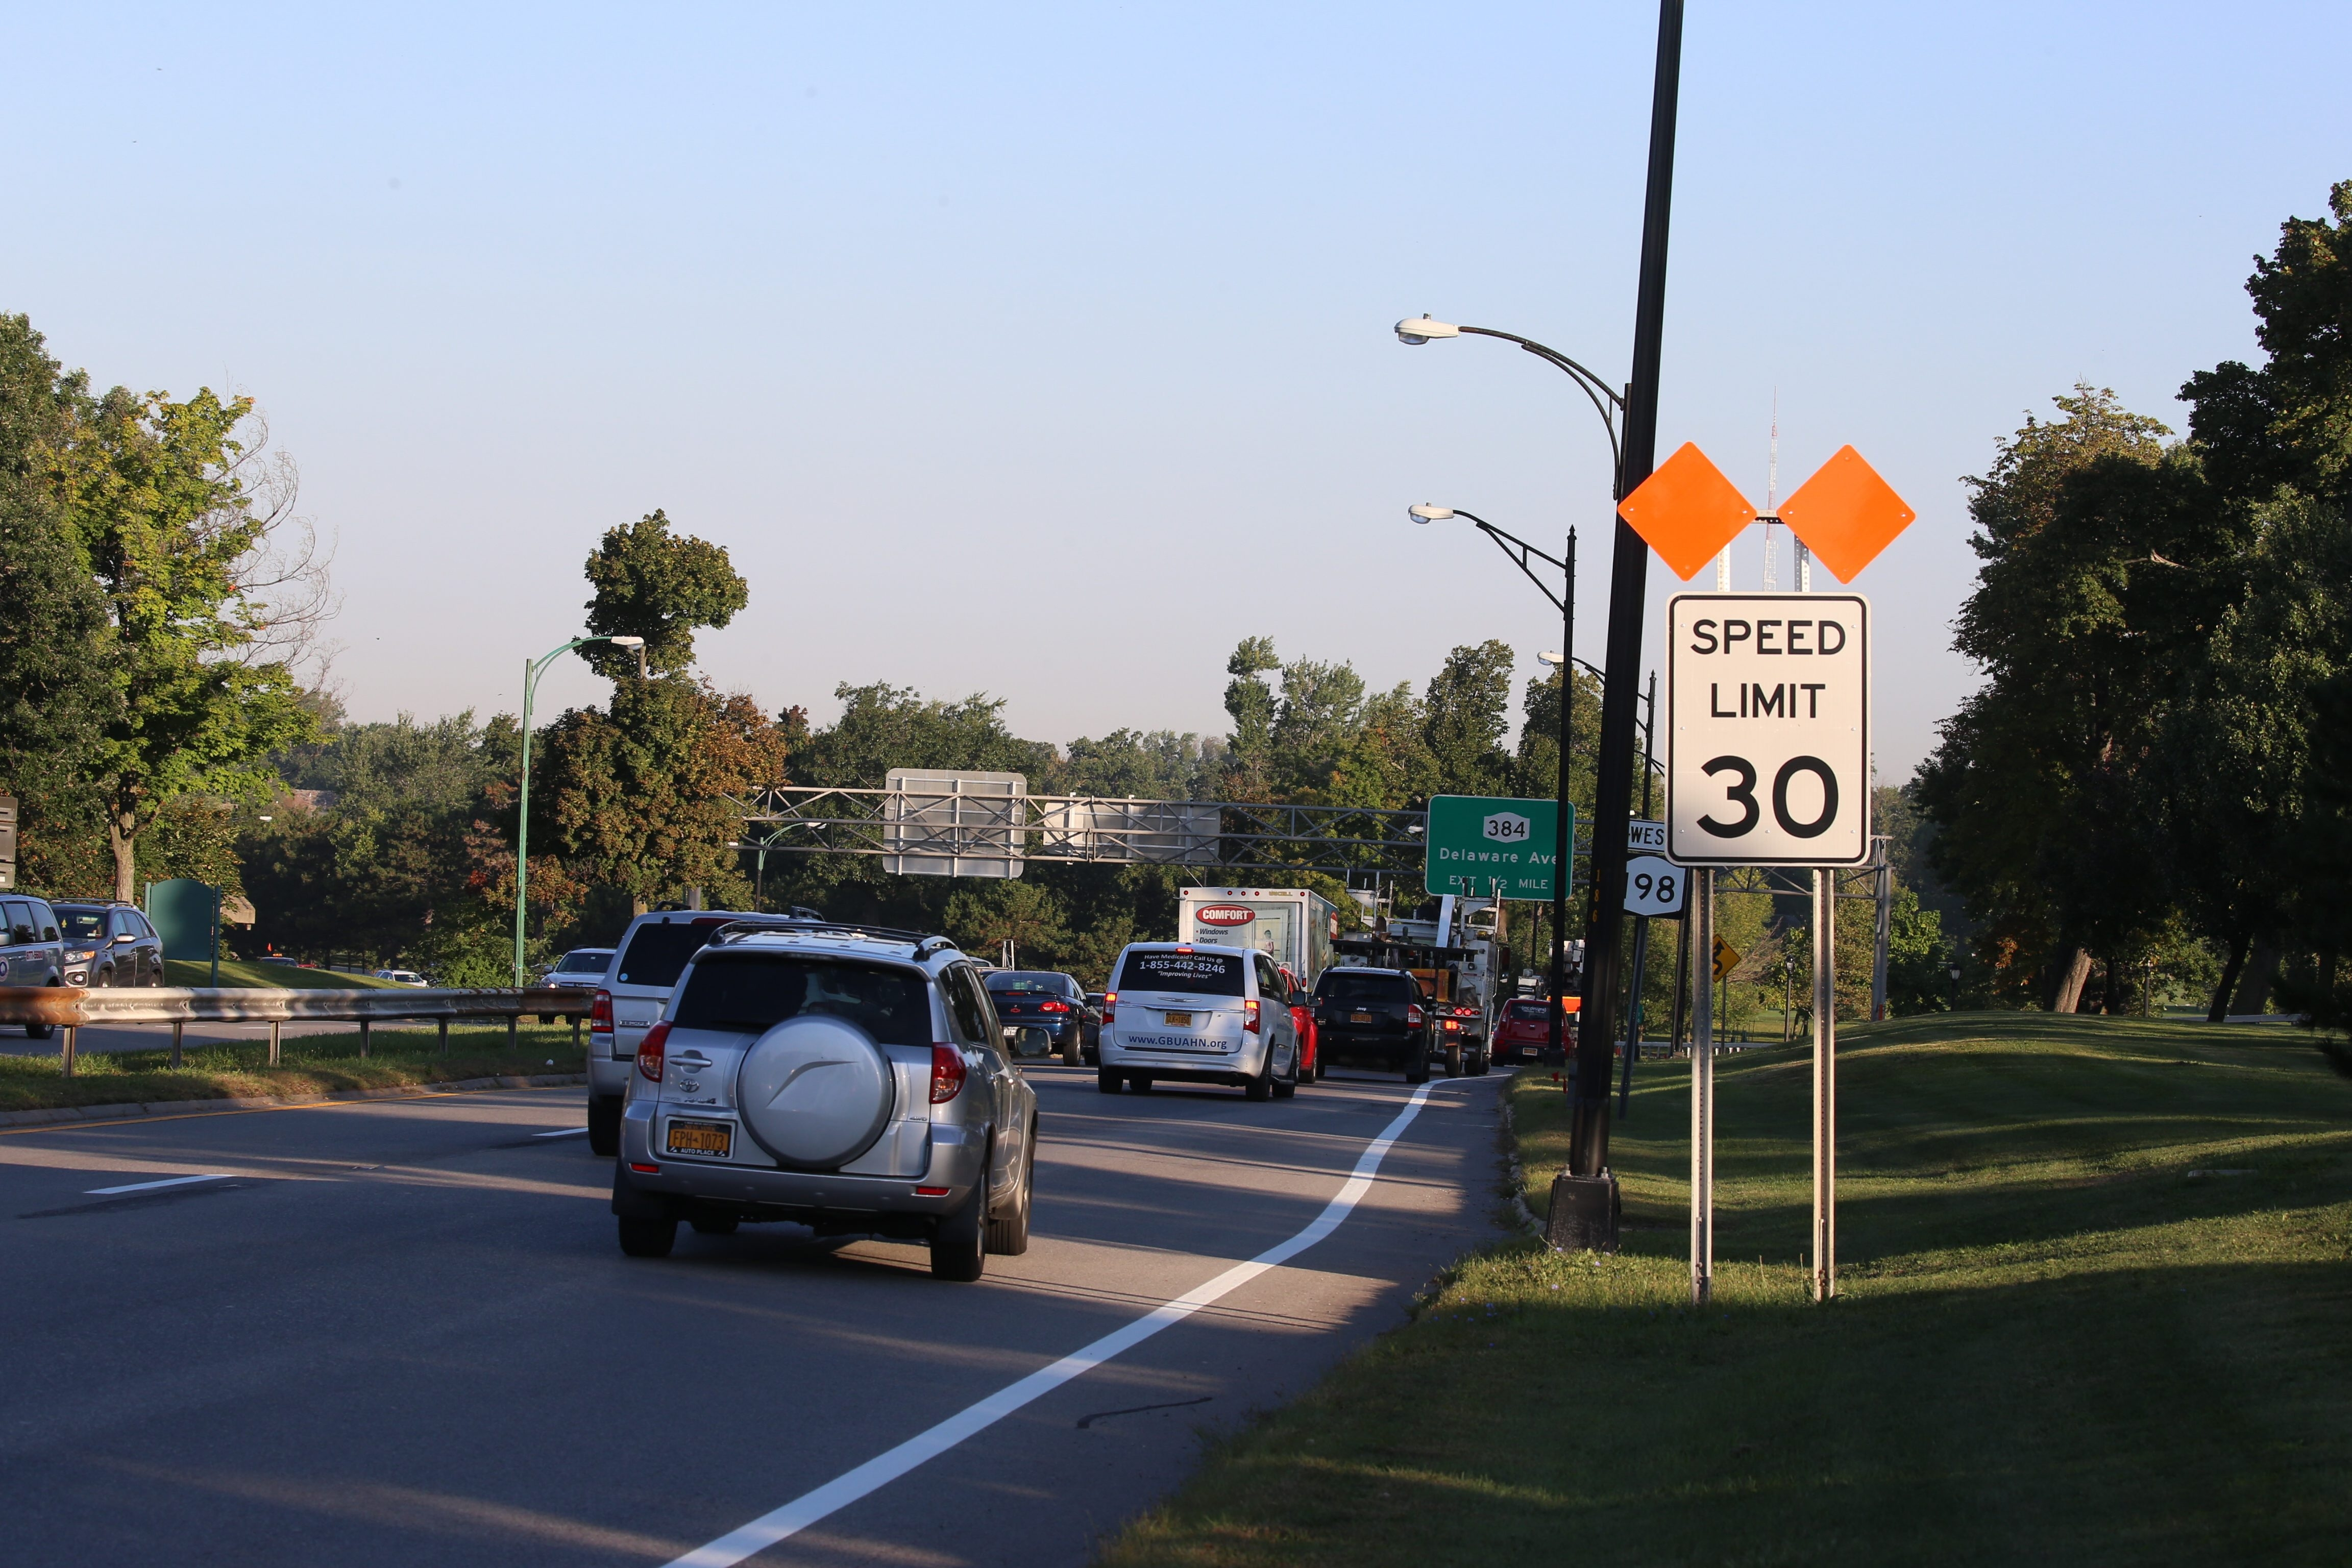 Long-term plans for the redesign of the Scajaquada Expressway, shown during morning rush hour, have not been finalized by the DOT.